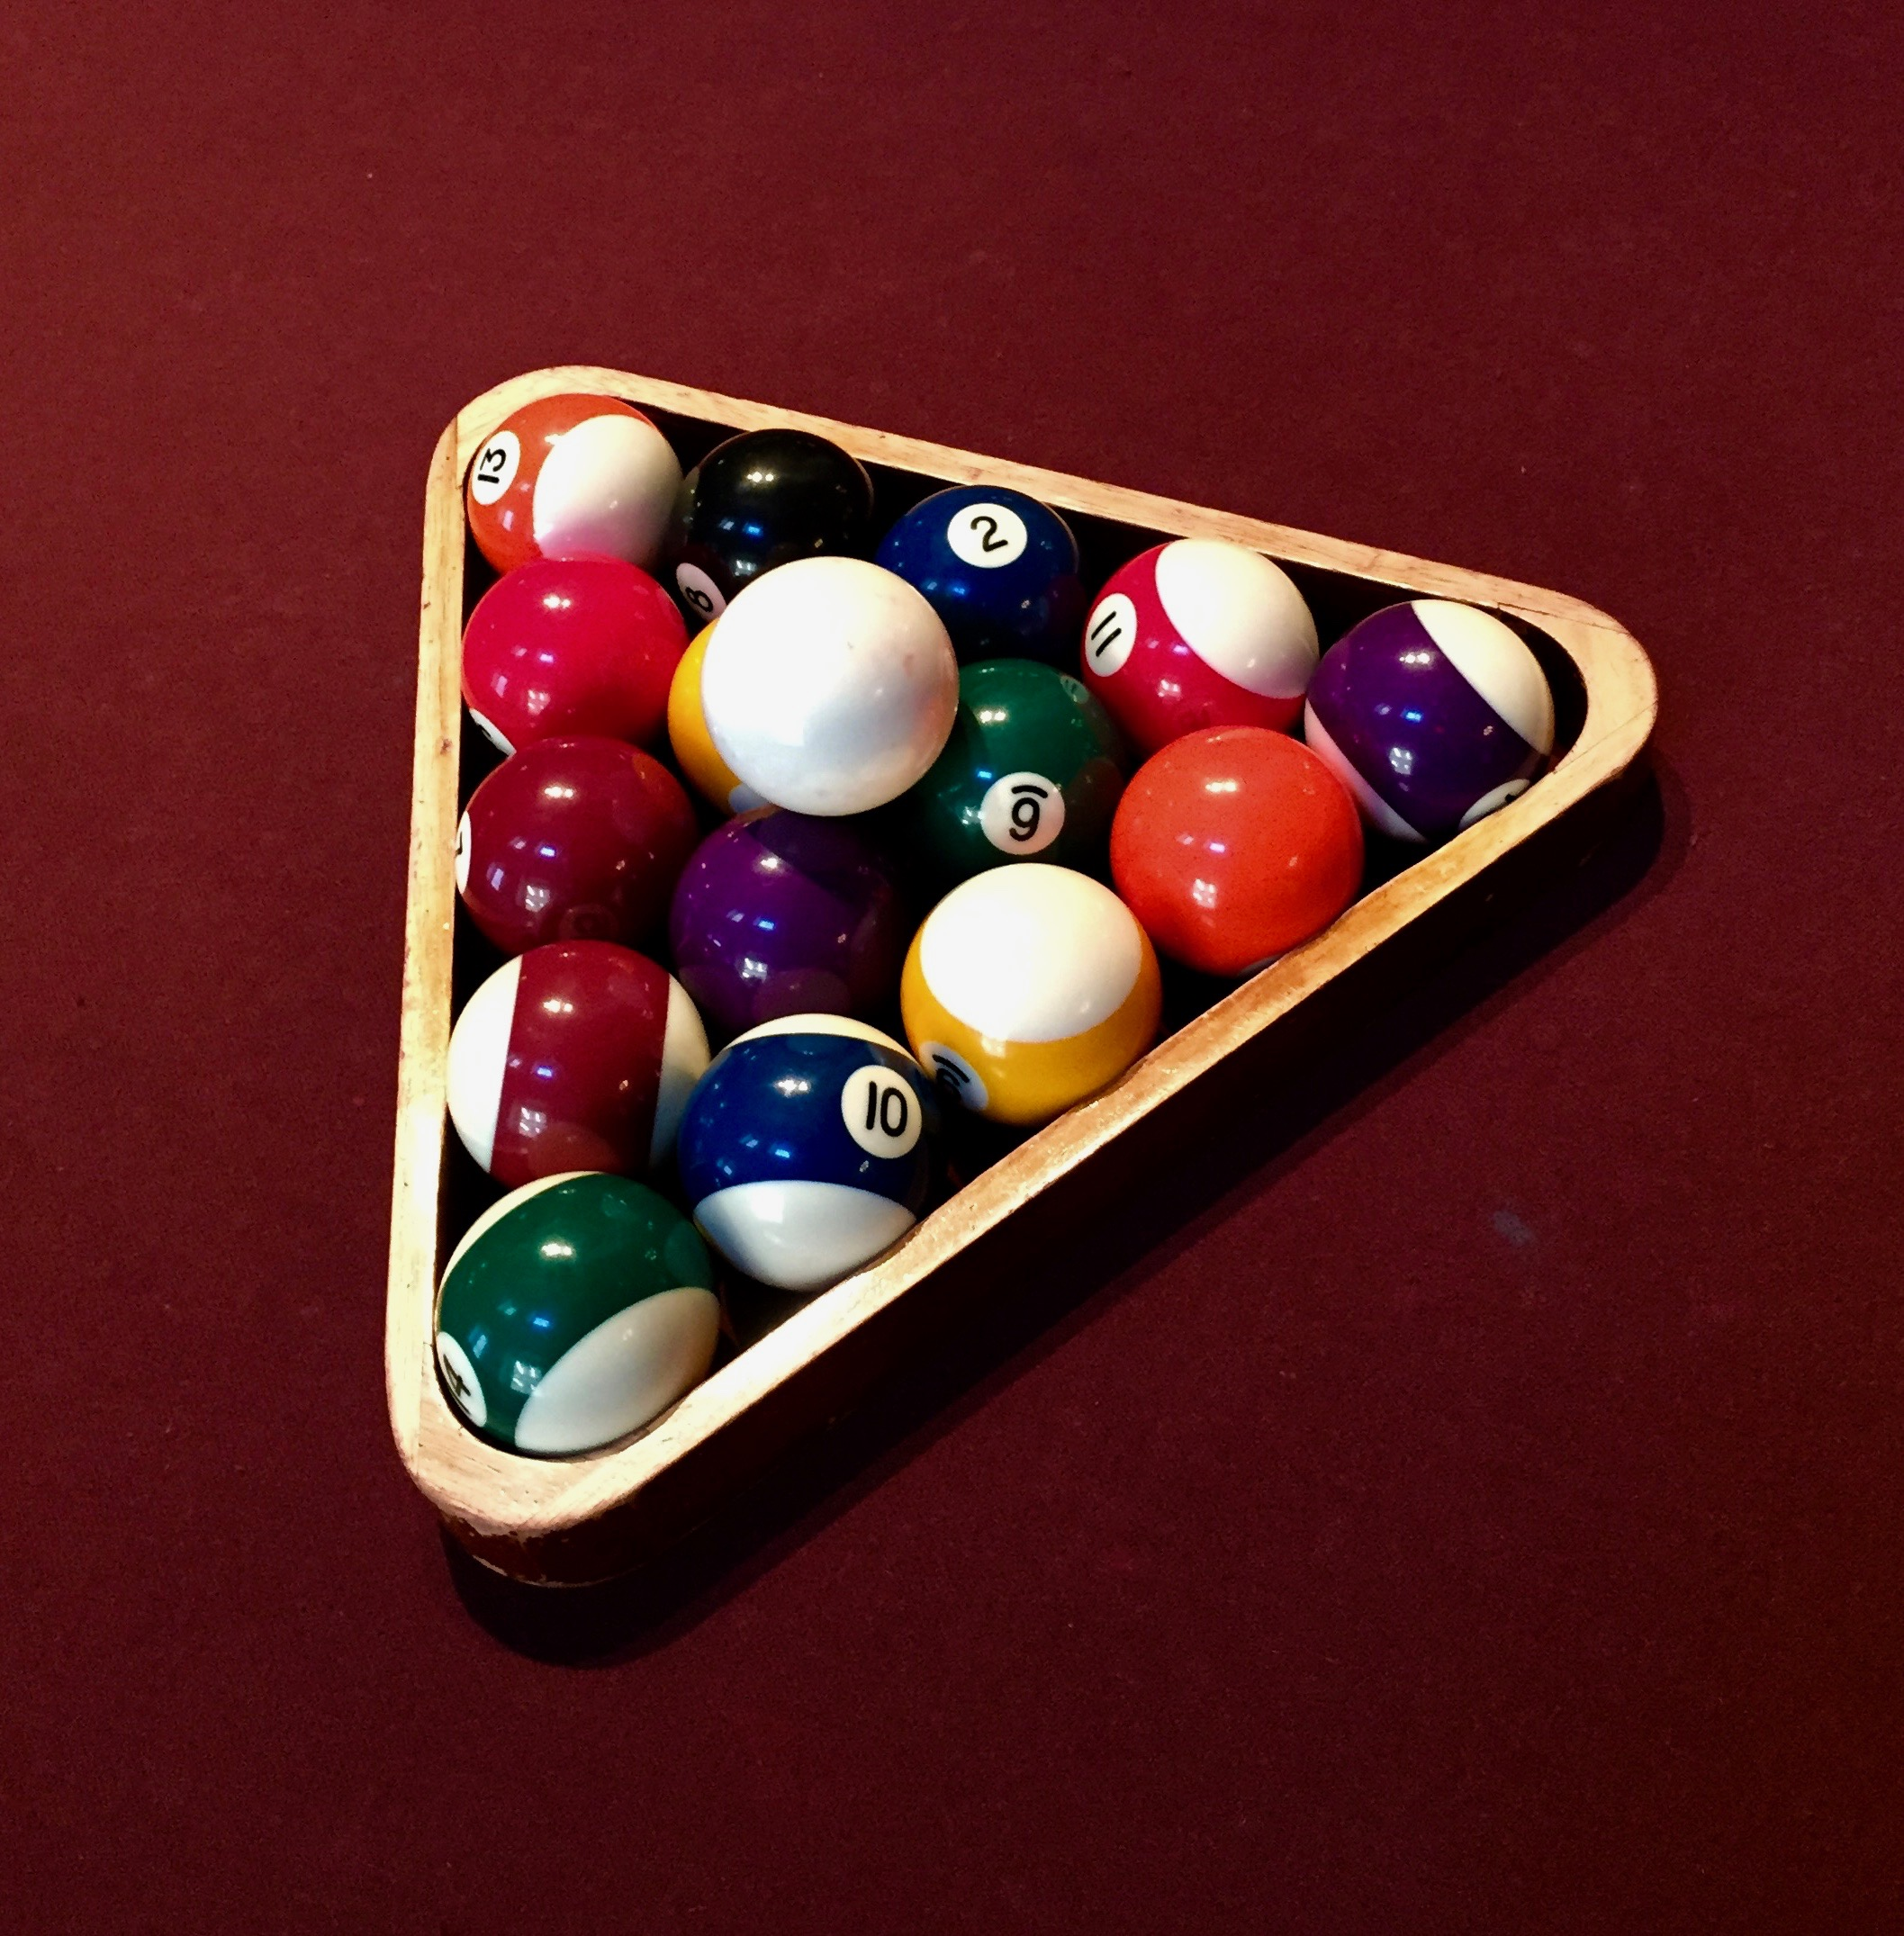 This Pool Ball Rack Caught My Attention Against This Uniquely Colored Table…